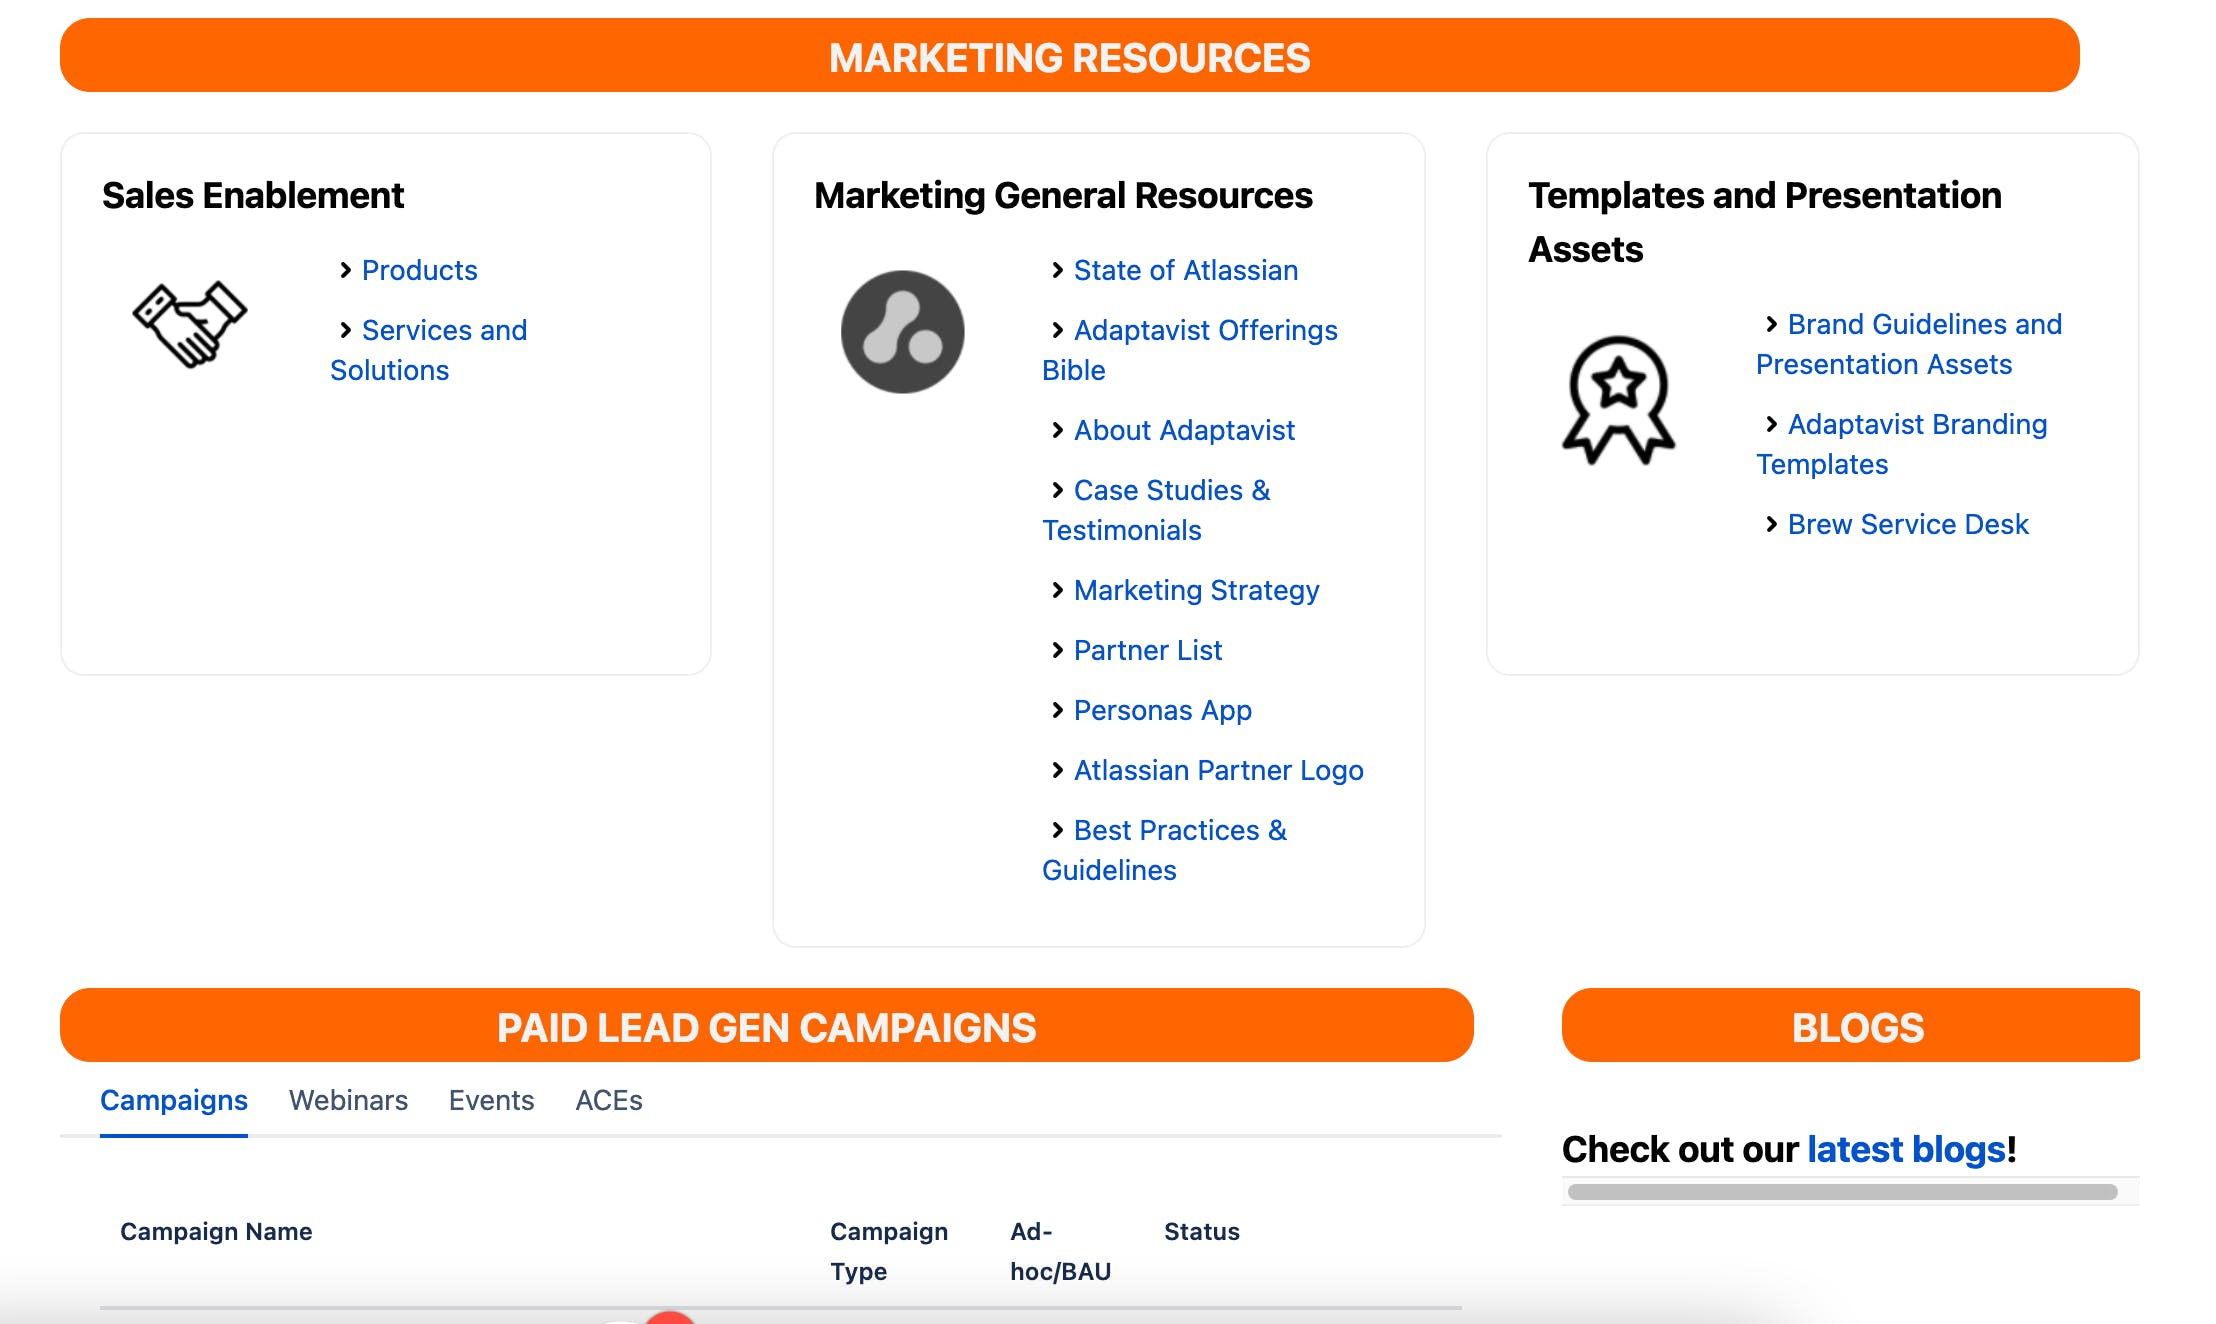 Internet screenshot of a Confluence page with orange title dividers and blue hyperlinks